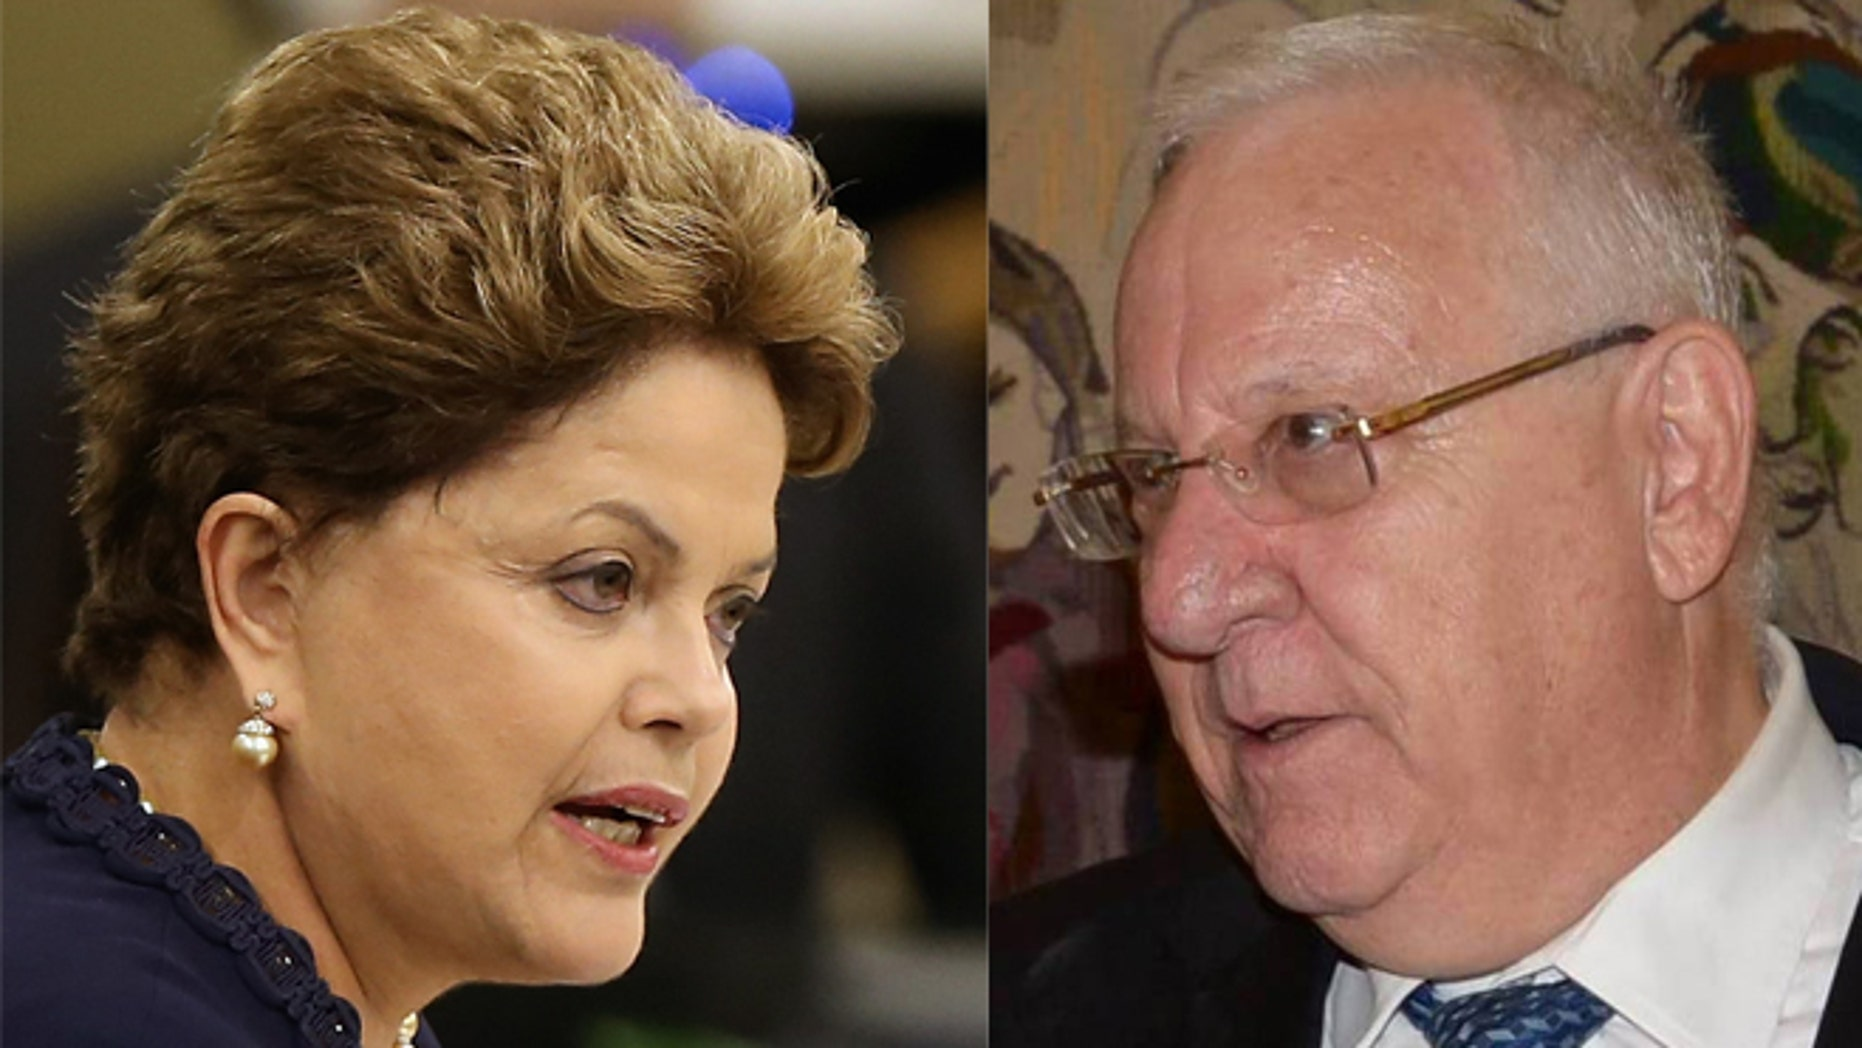 A photo composite of Brazilian President Dilma Rousseff (left) and Israeli President Reuven Rivlin (right).